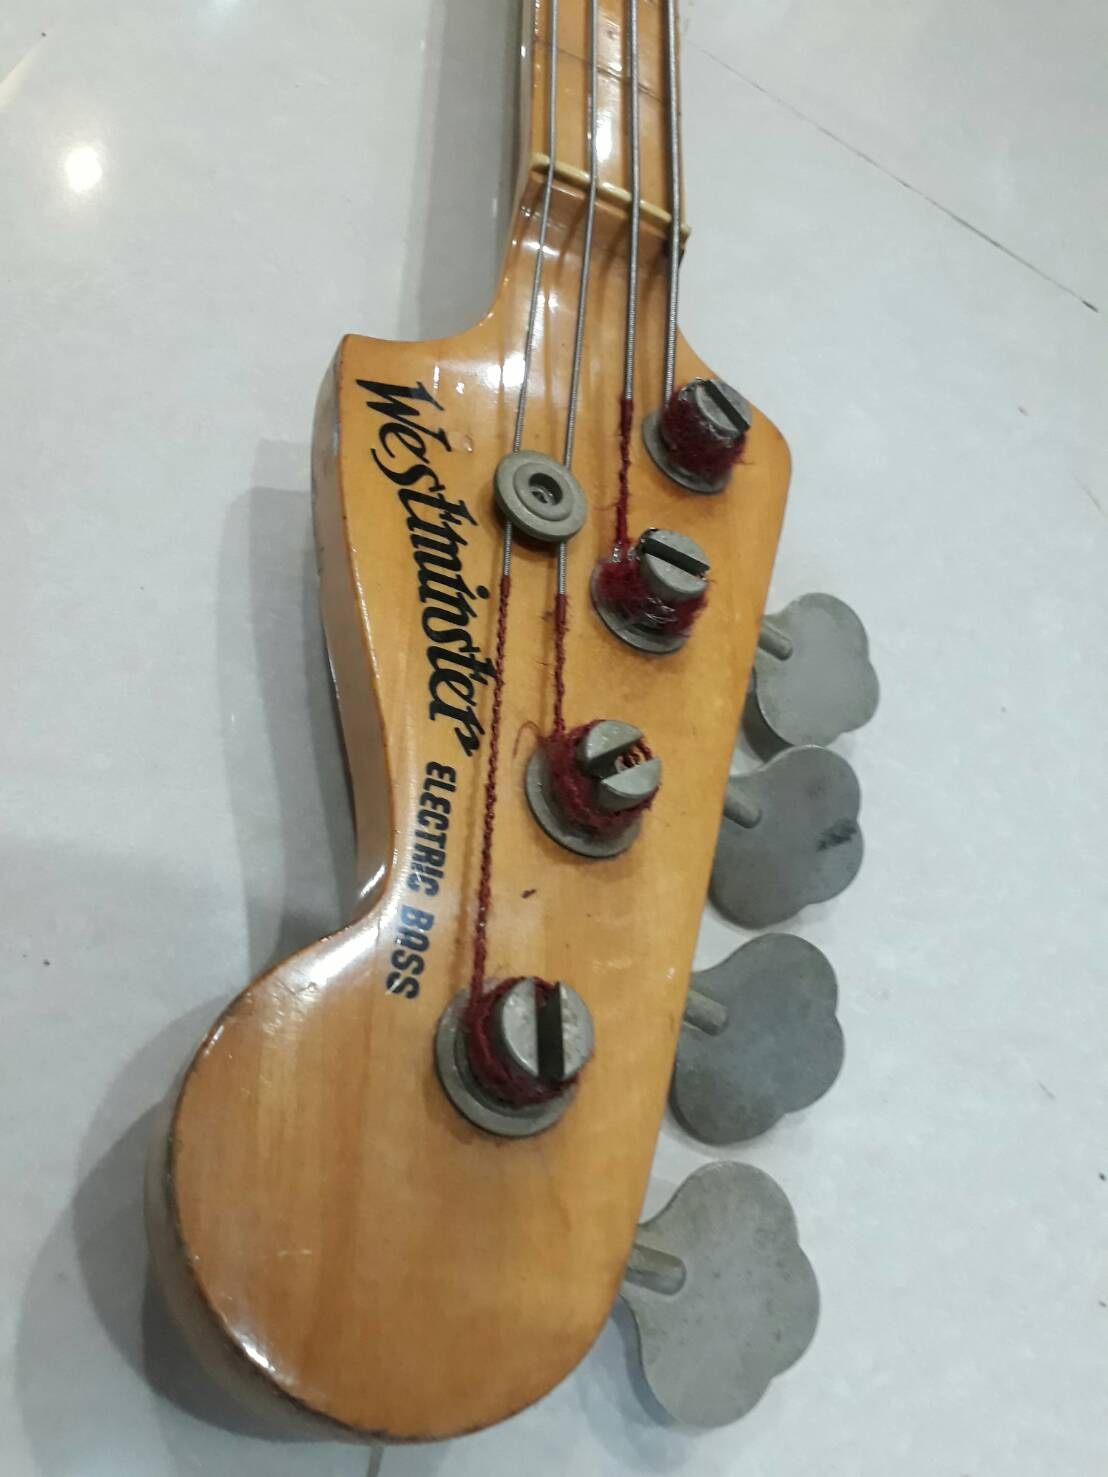 westminster p bass vintage japan fretlessไม่มีเฟรต